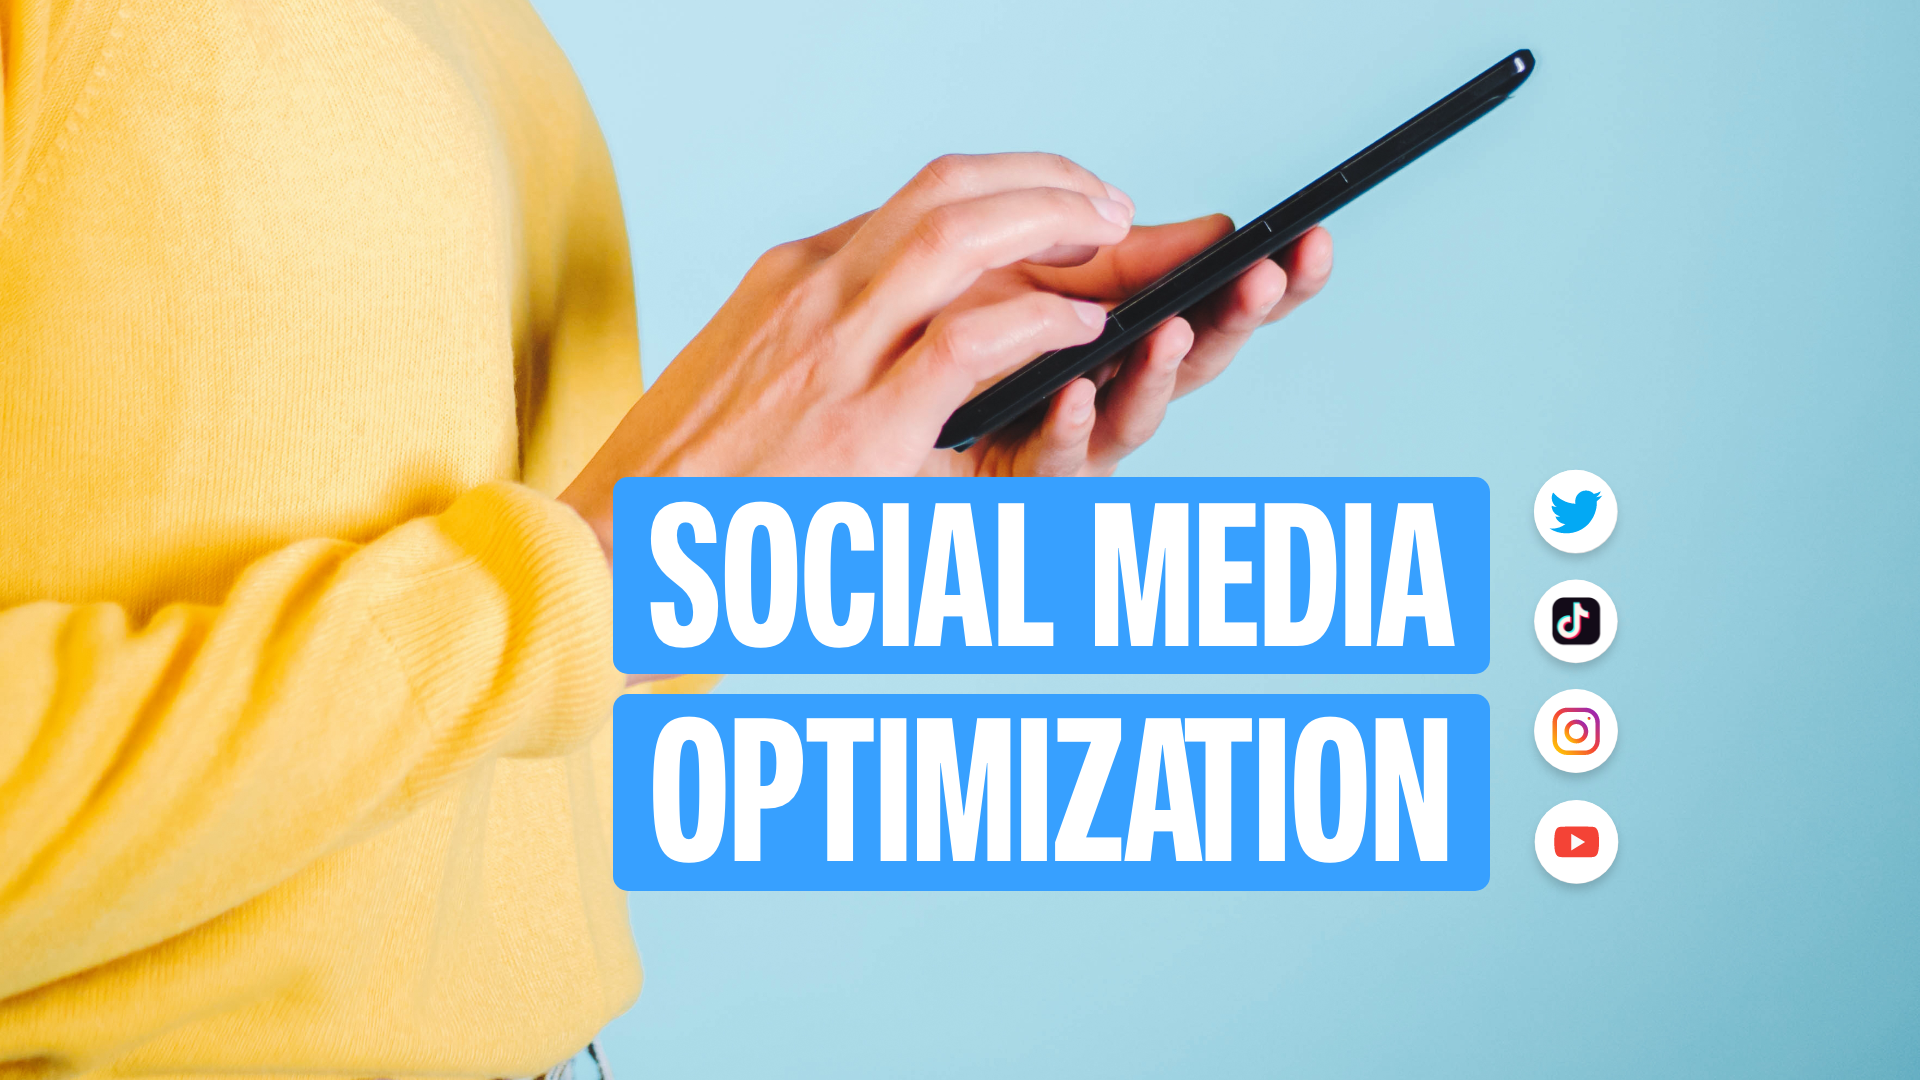 5 Common Social Media Optimization Mistakes Beginners Make